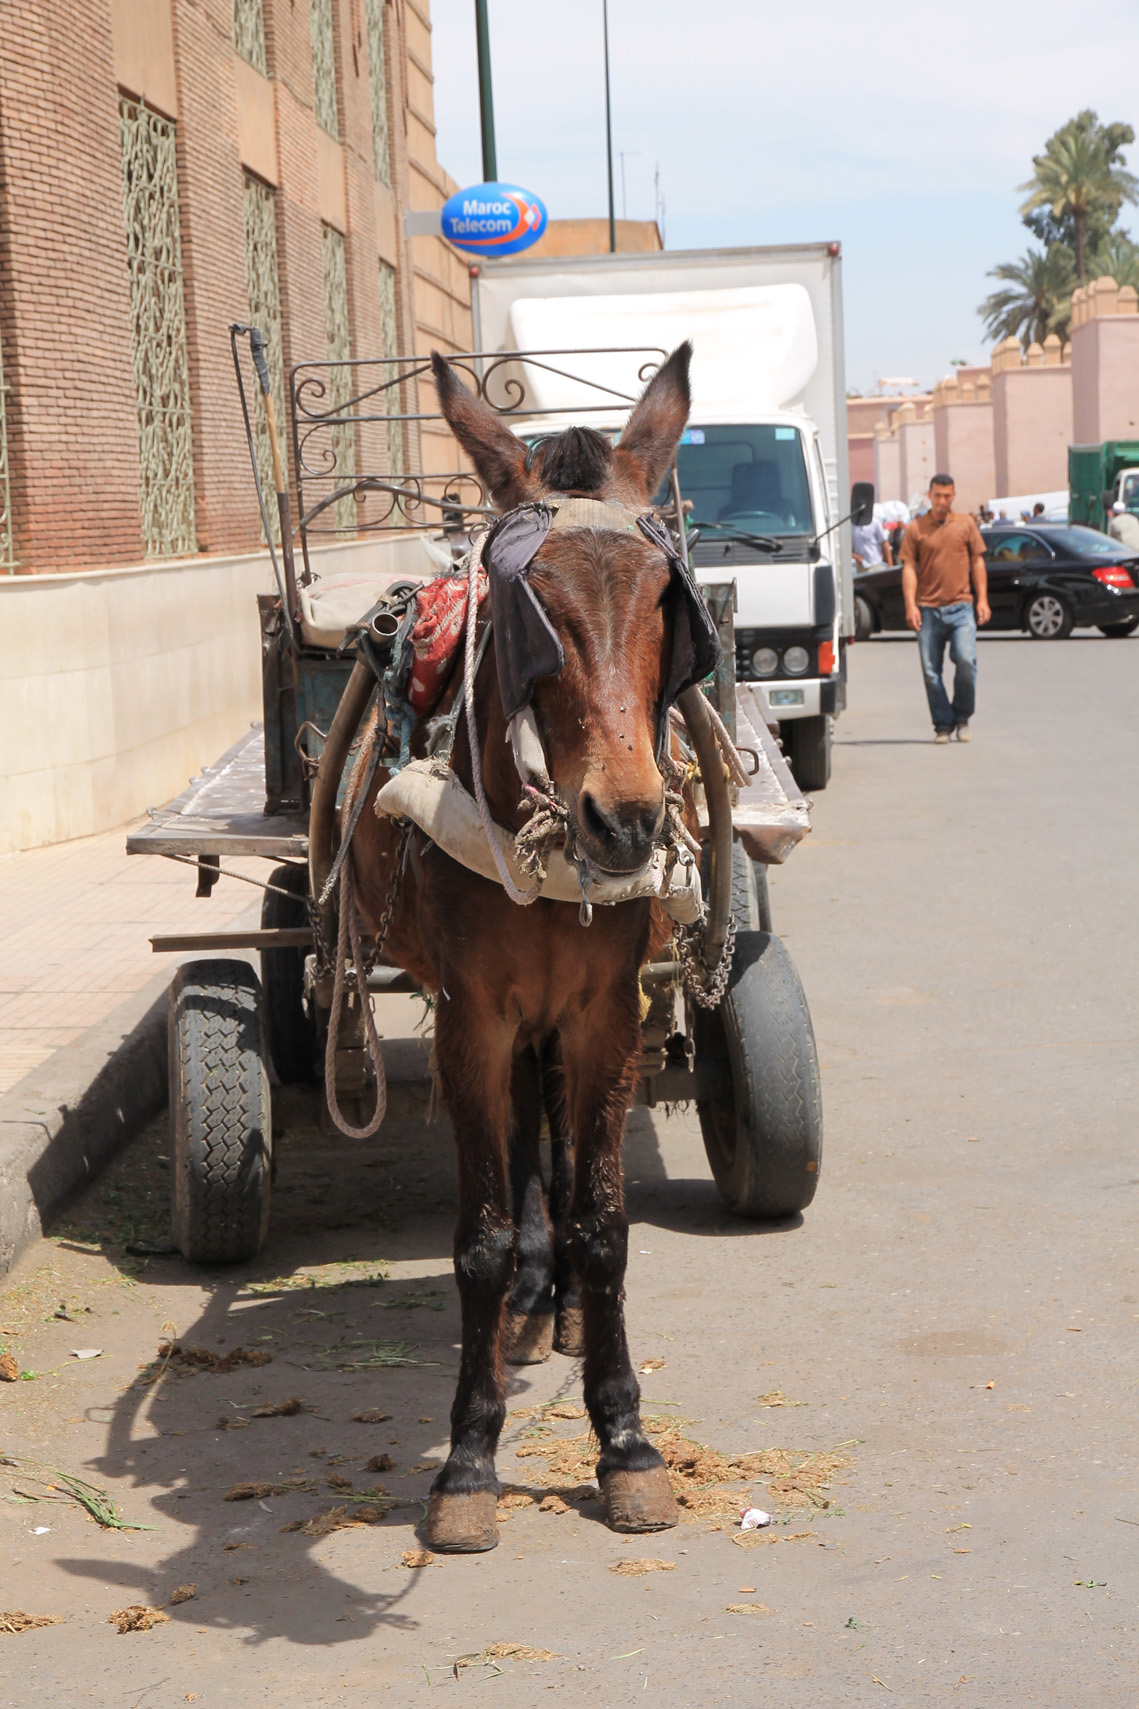 A mule is a very common sight in Morocco, also in Marrakech.